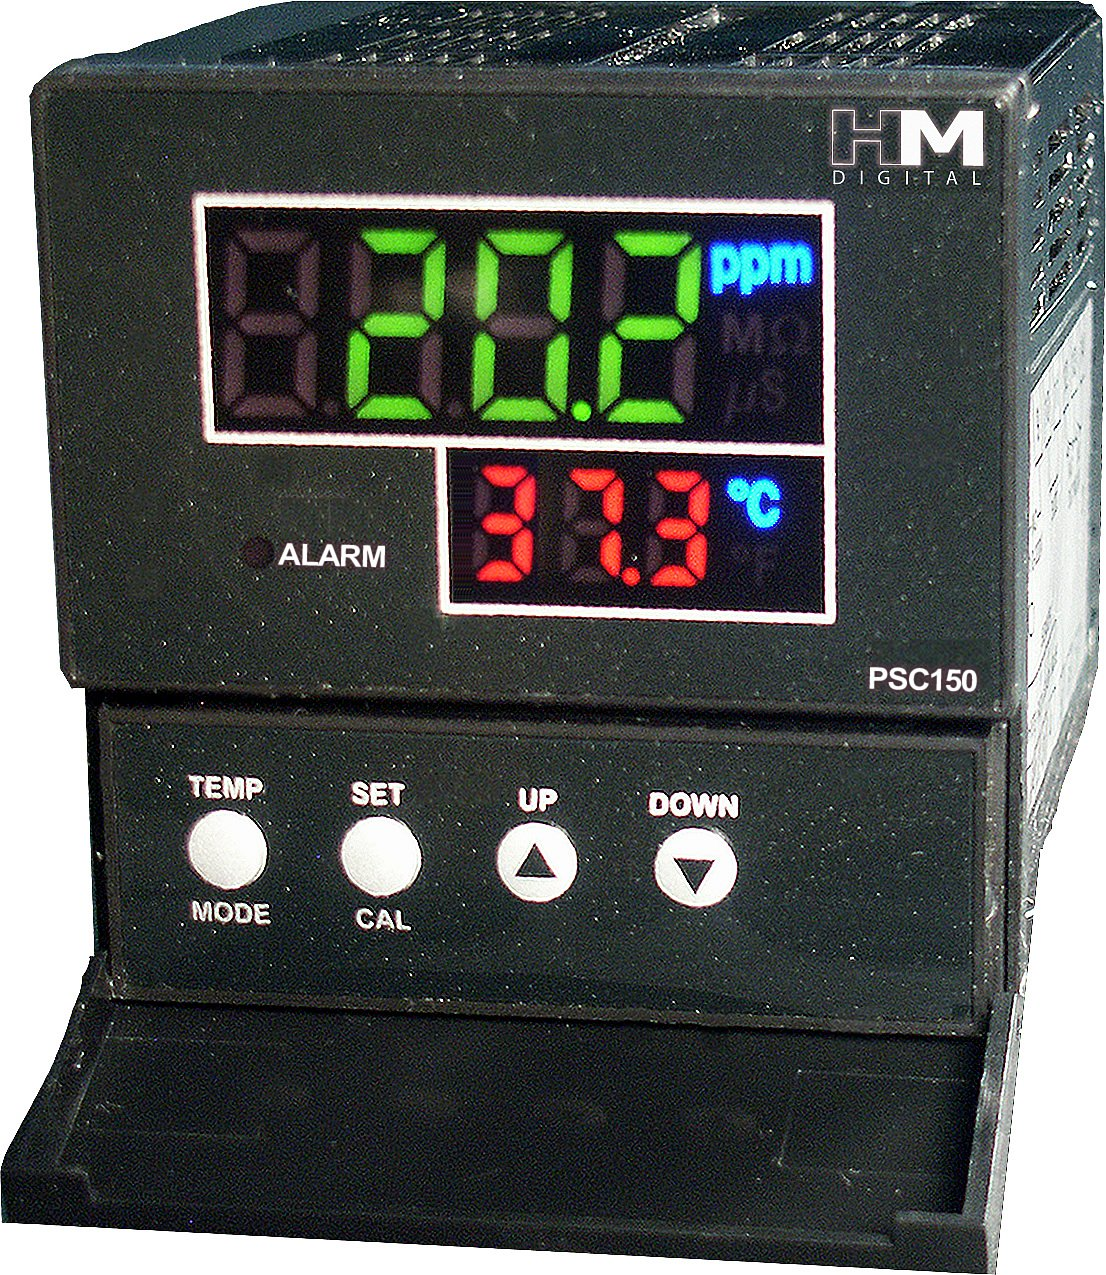 HM Digital PSC-150 Extended Range EC/TDS Controller, 0-9999 µS Measurement Range, 0.1 µS/ppm Resolution, +/-2% Readout Accuracy